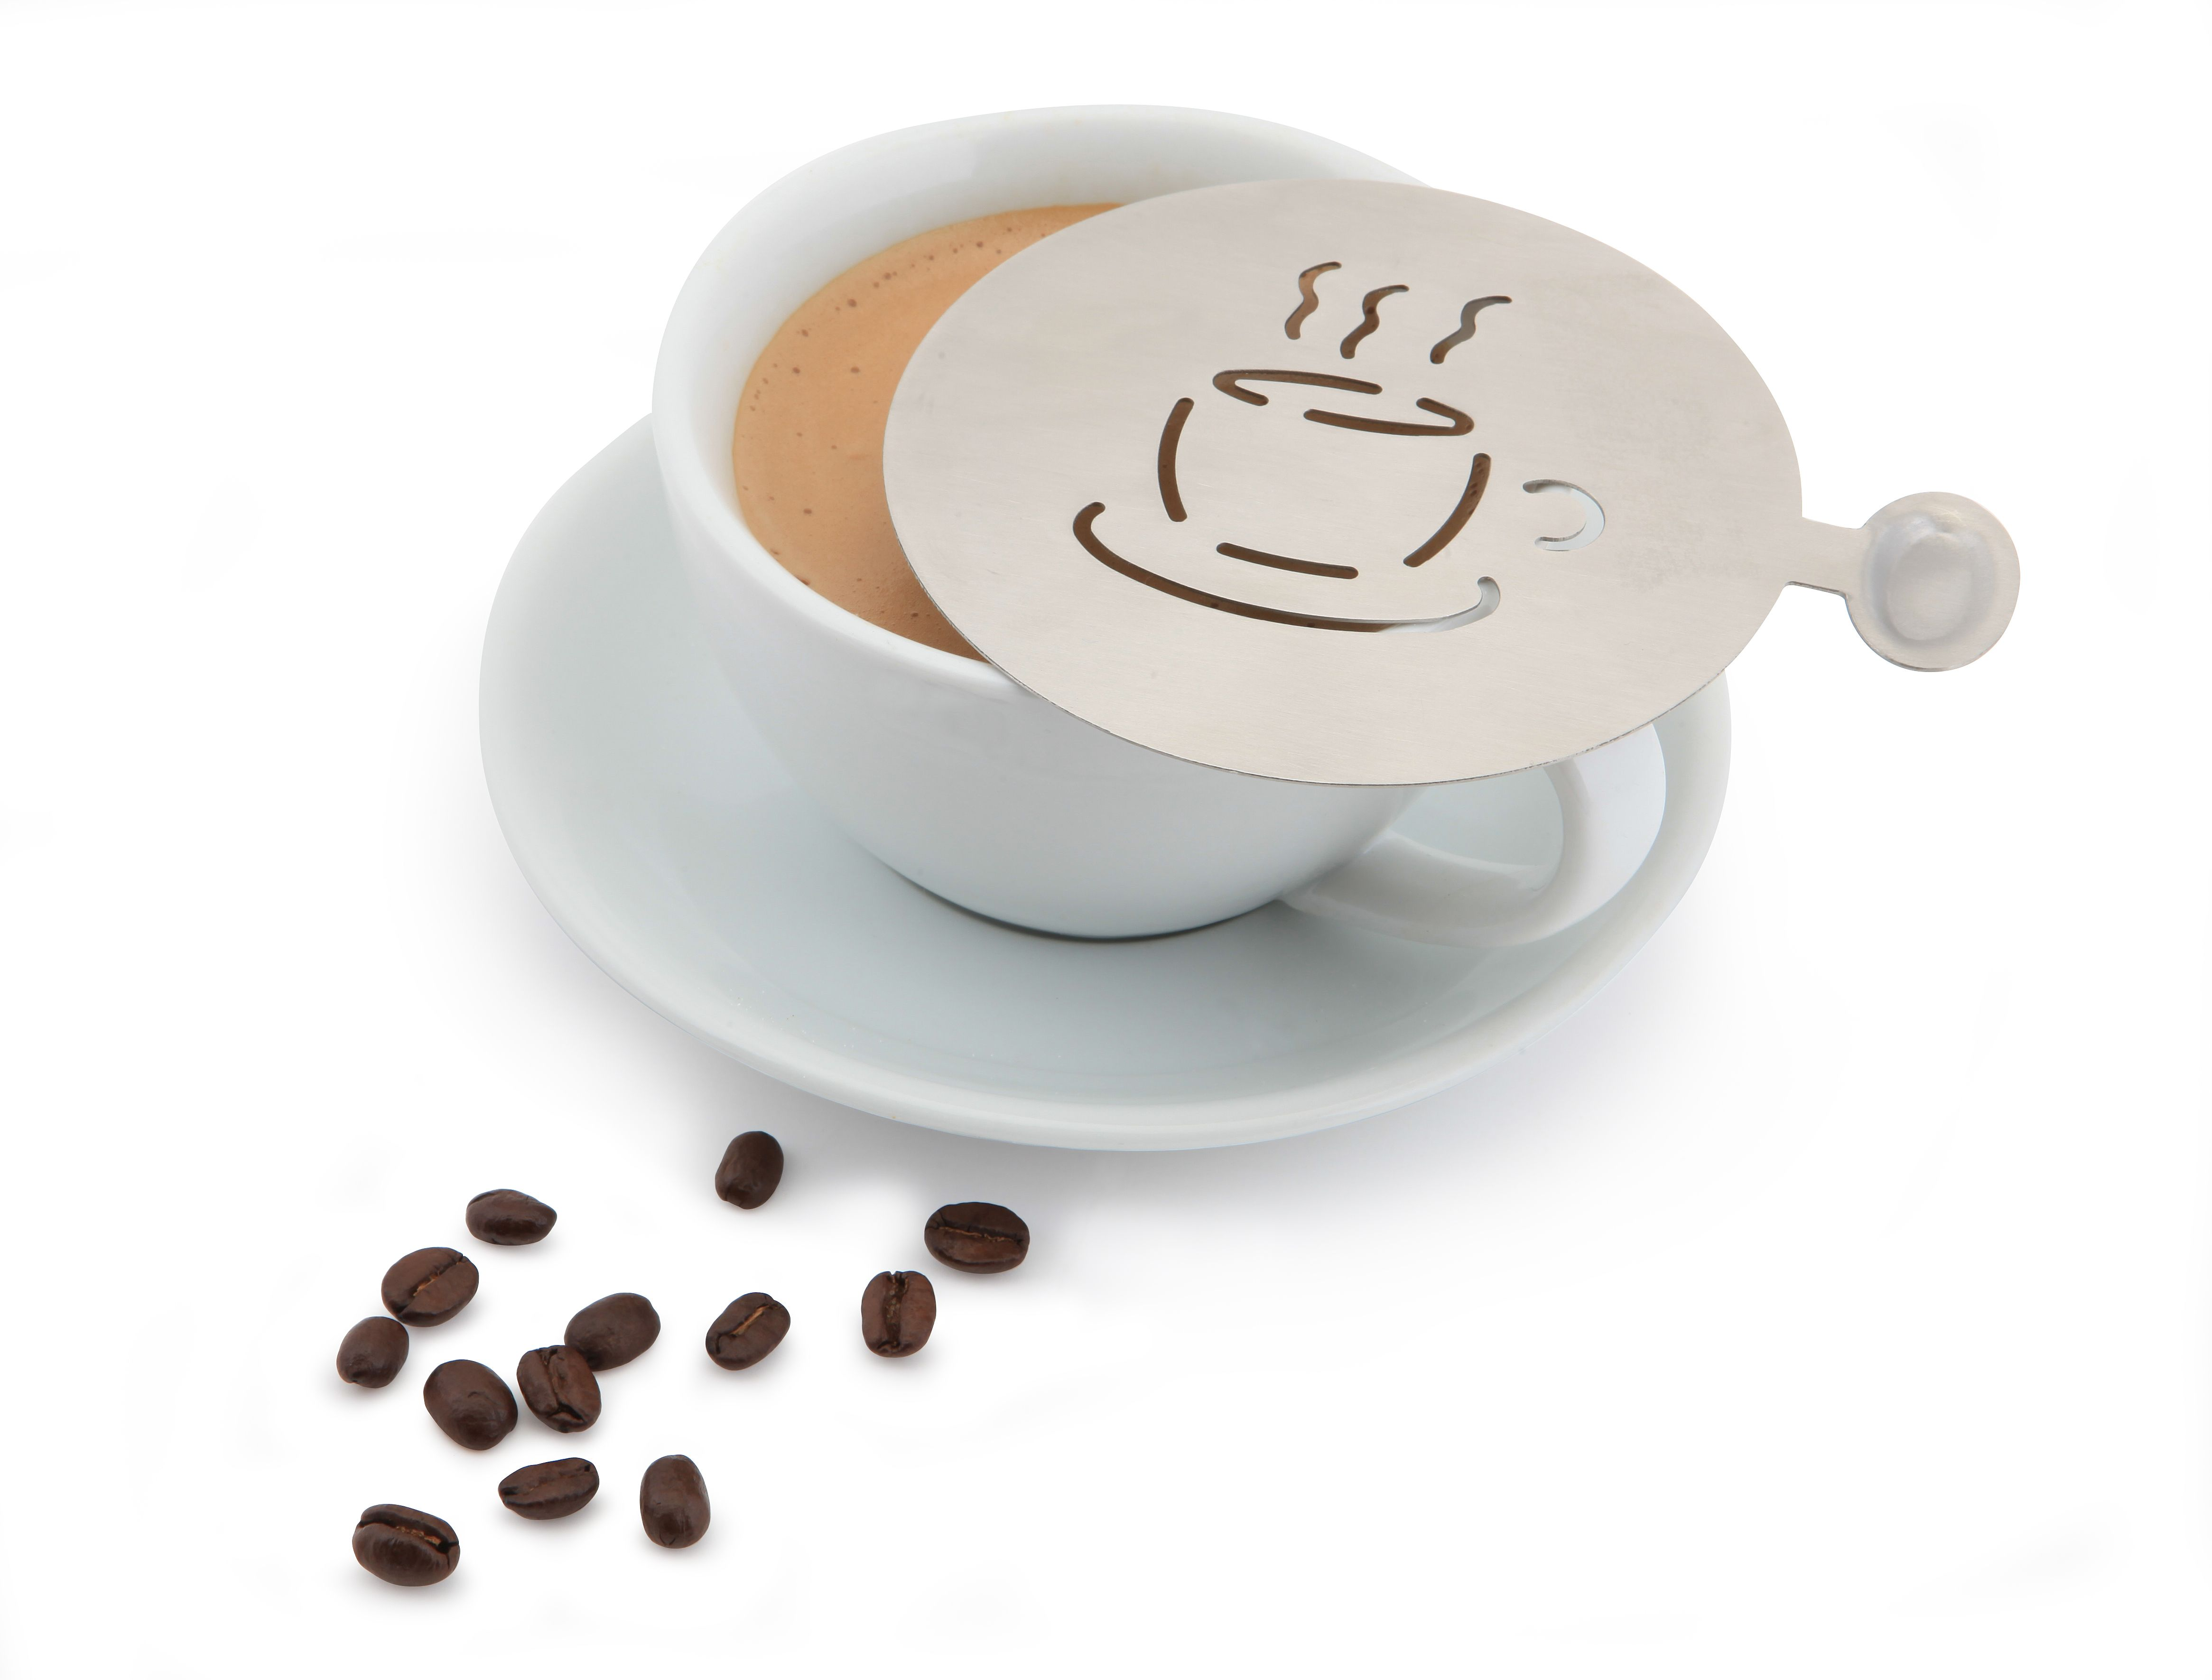 Stainless Steel Coffee Stencil    Perfect for turning a cappuccino into something special every time!    Now available in two different designs